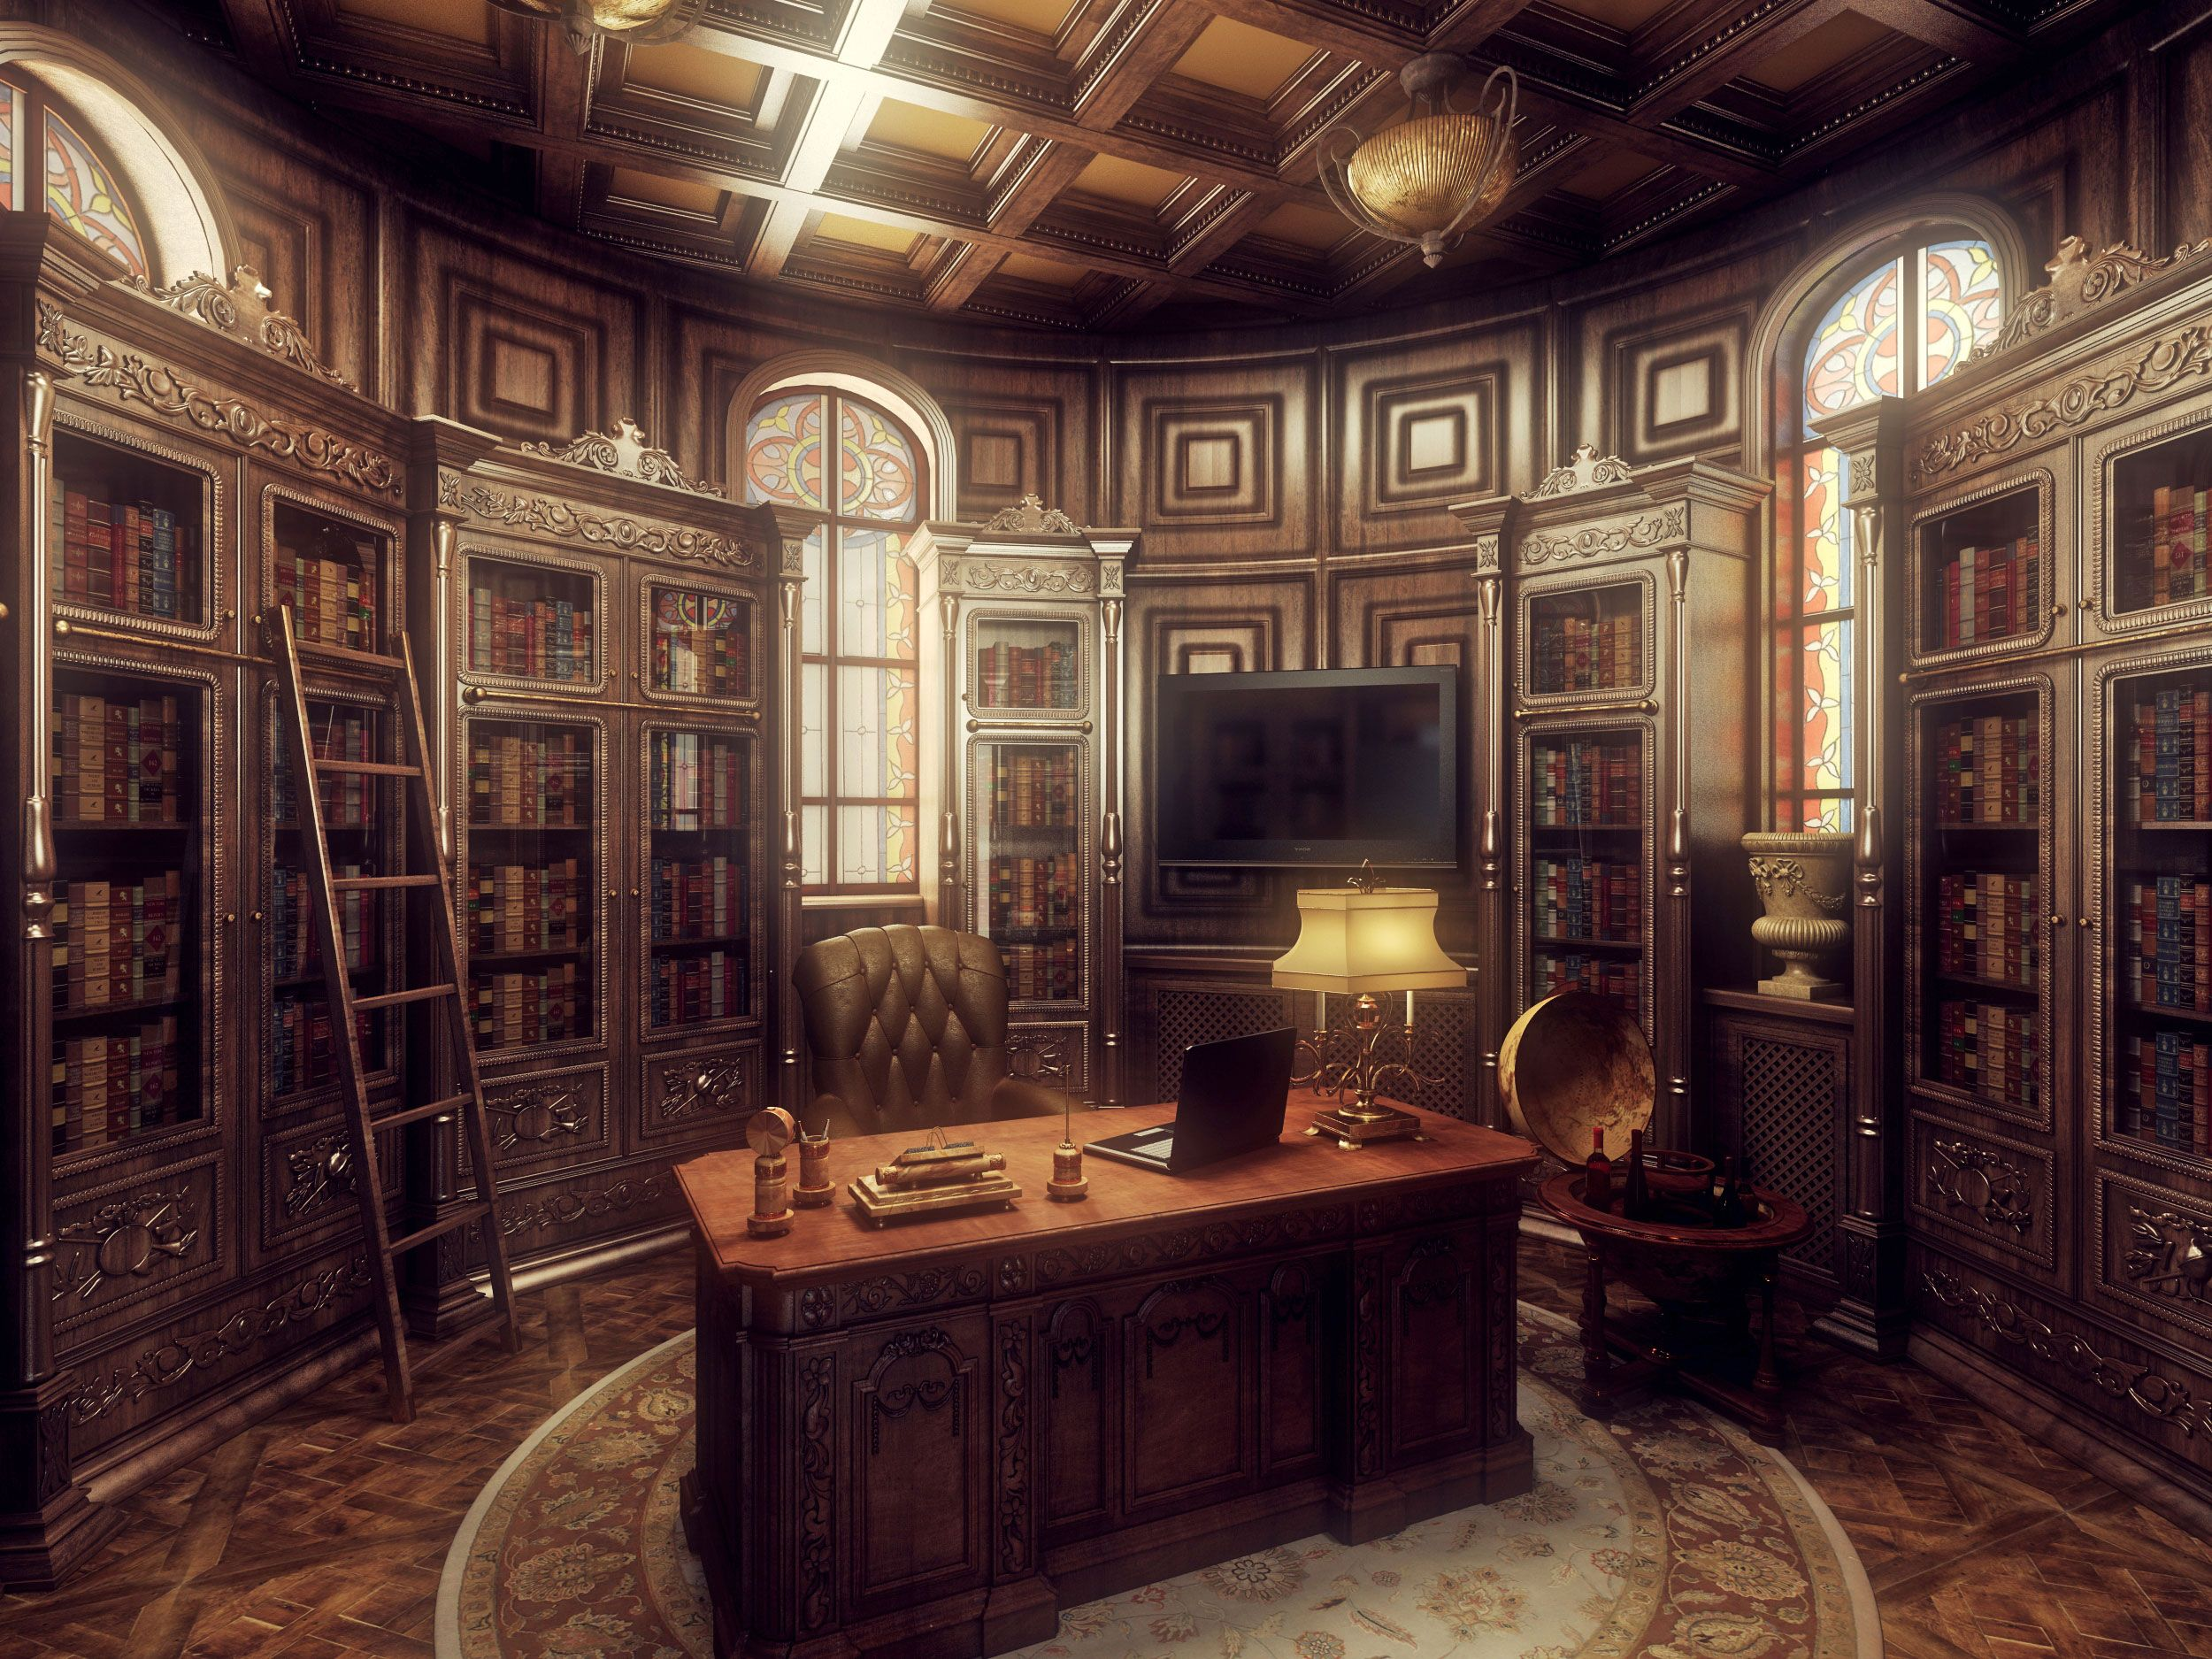 Steampunk Interior Design Ideas go steampunk interior design ideas inspiration Find This Pin And More On Steampunk Steampunk Interior Design Ideas